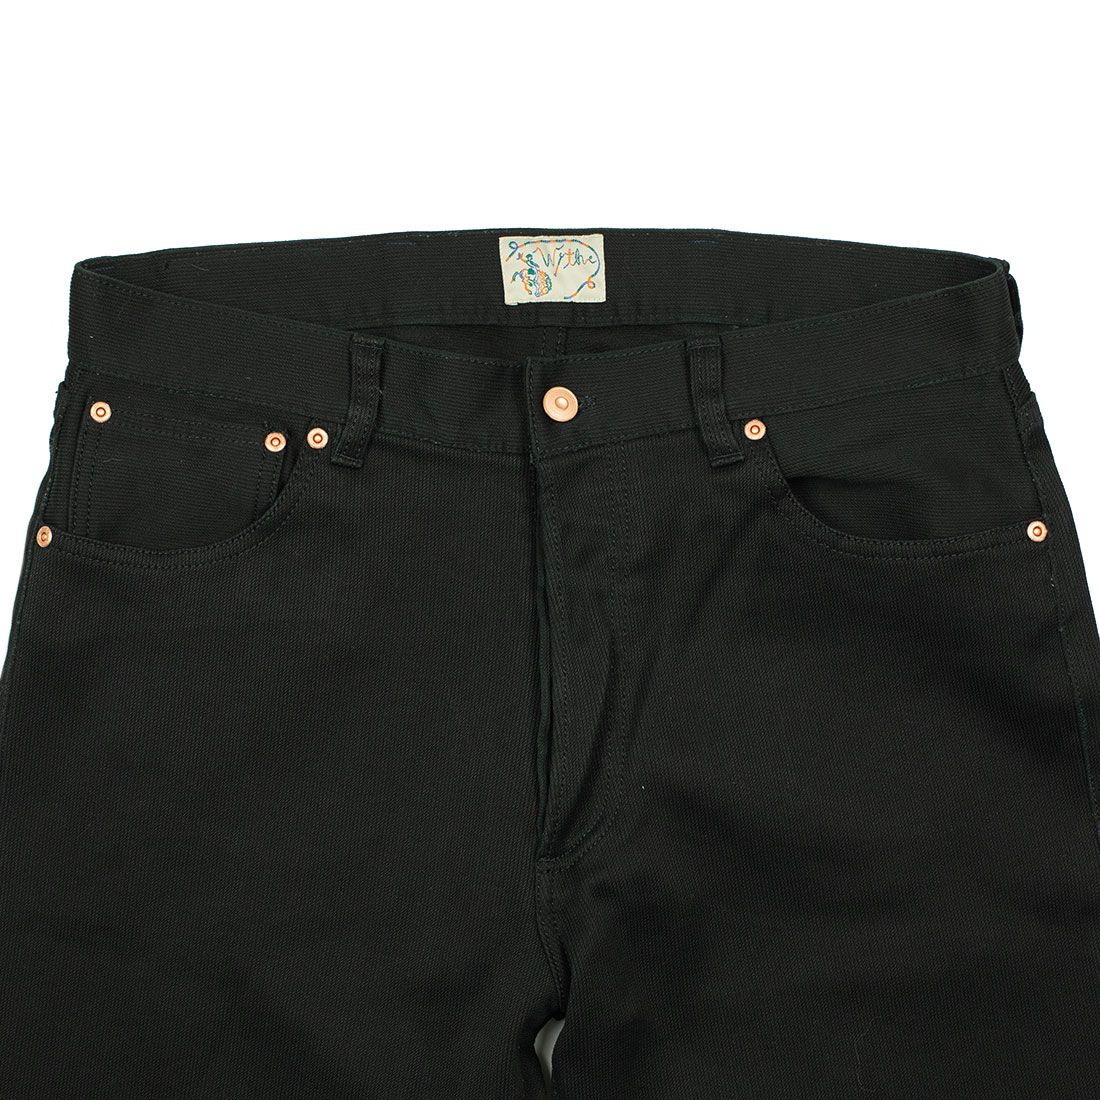 20201124 NMWA Wythe Five pocket pants in black Japanese bedford cord 07.jpg